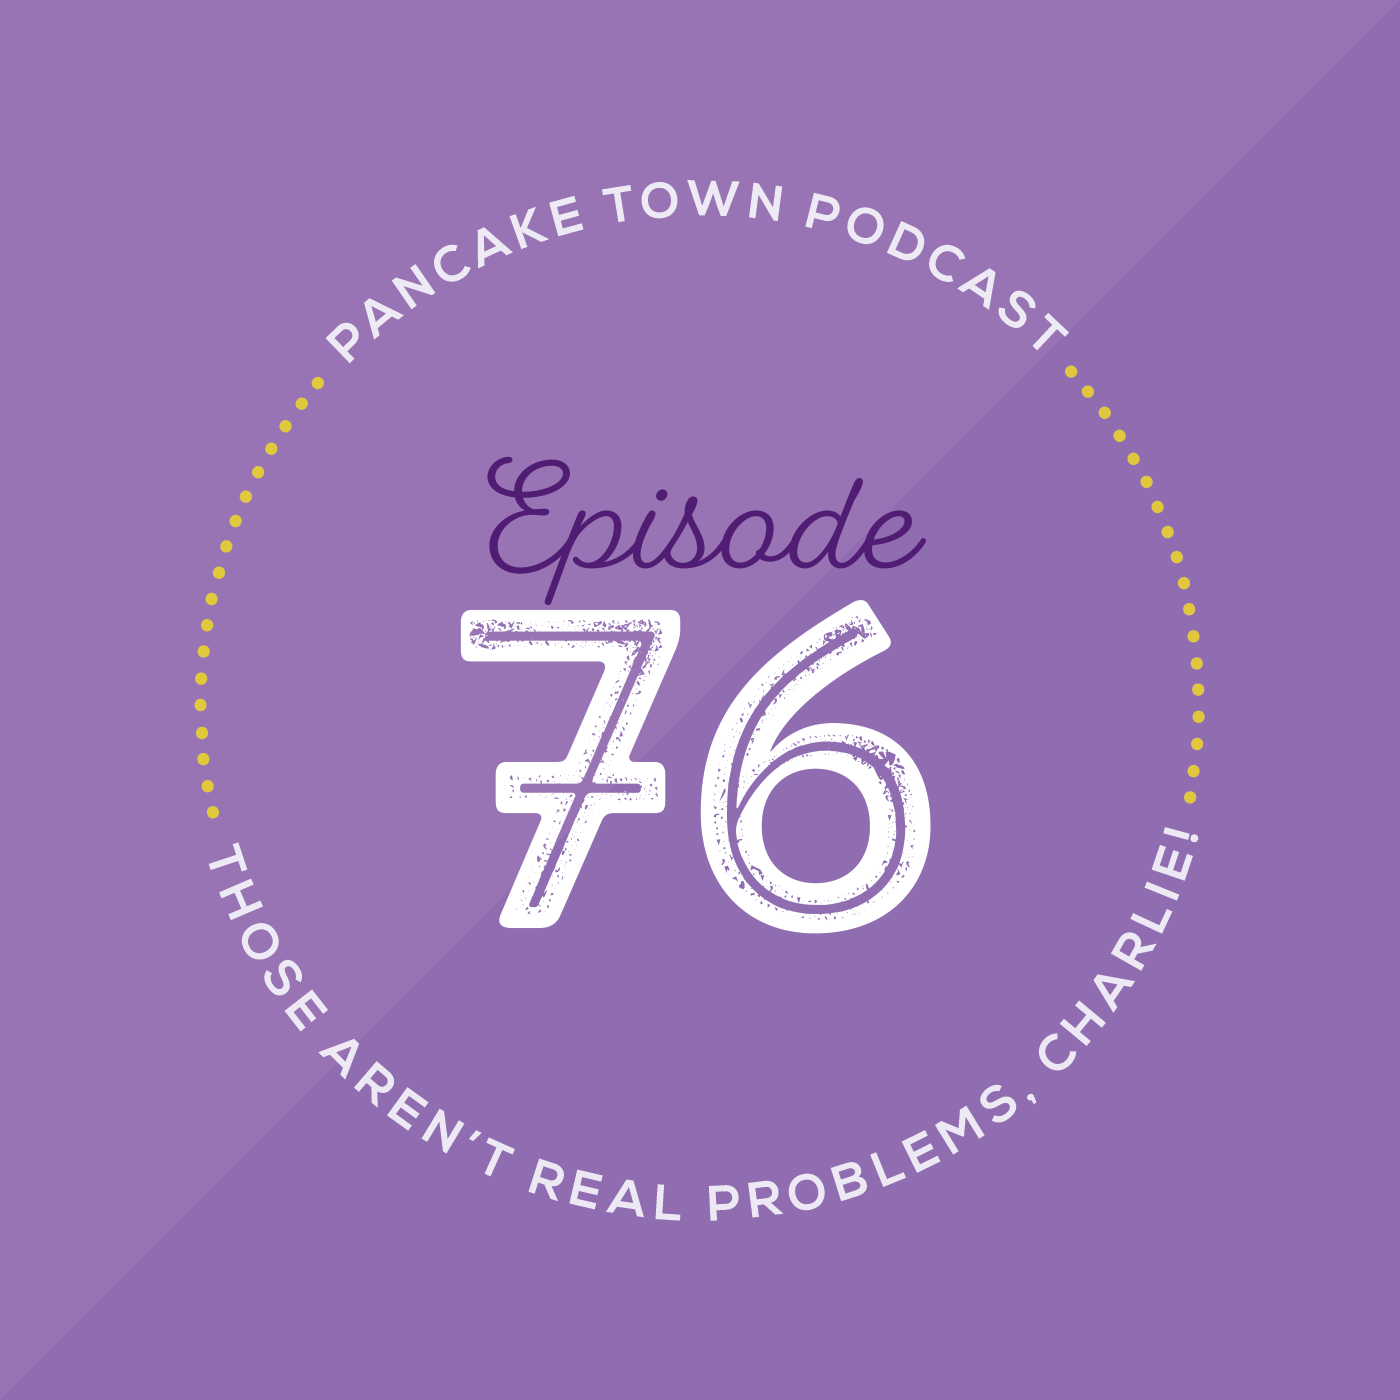 Episode 76 - Those Aren't Real Problems, Charlie!